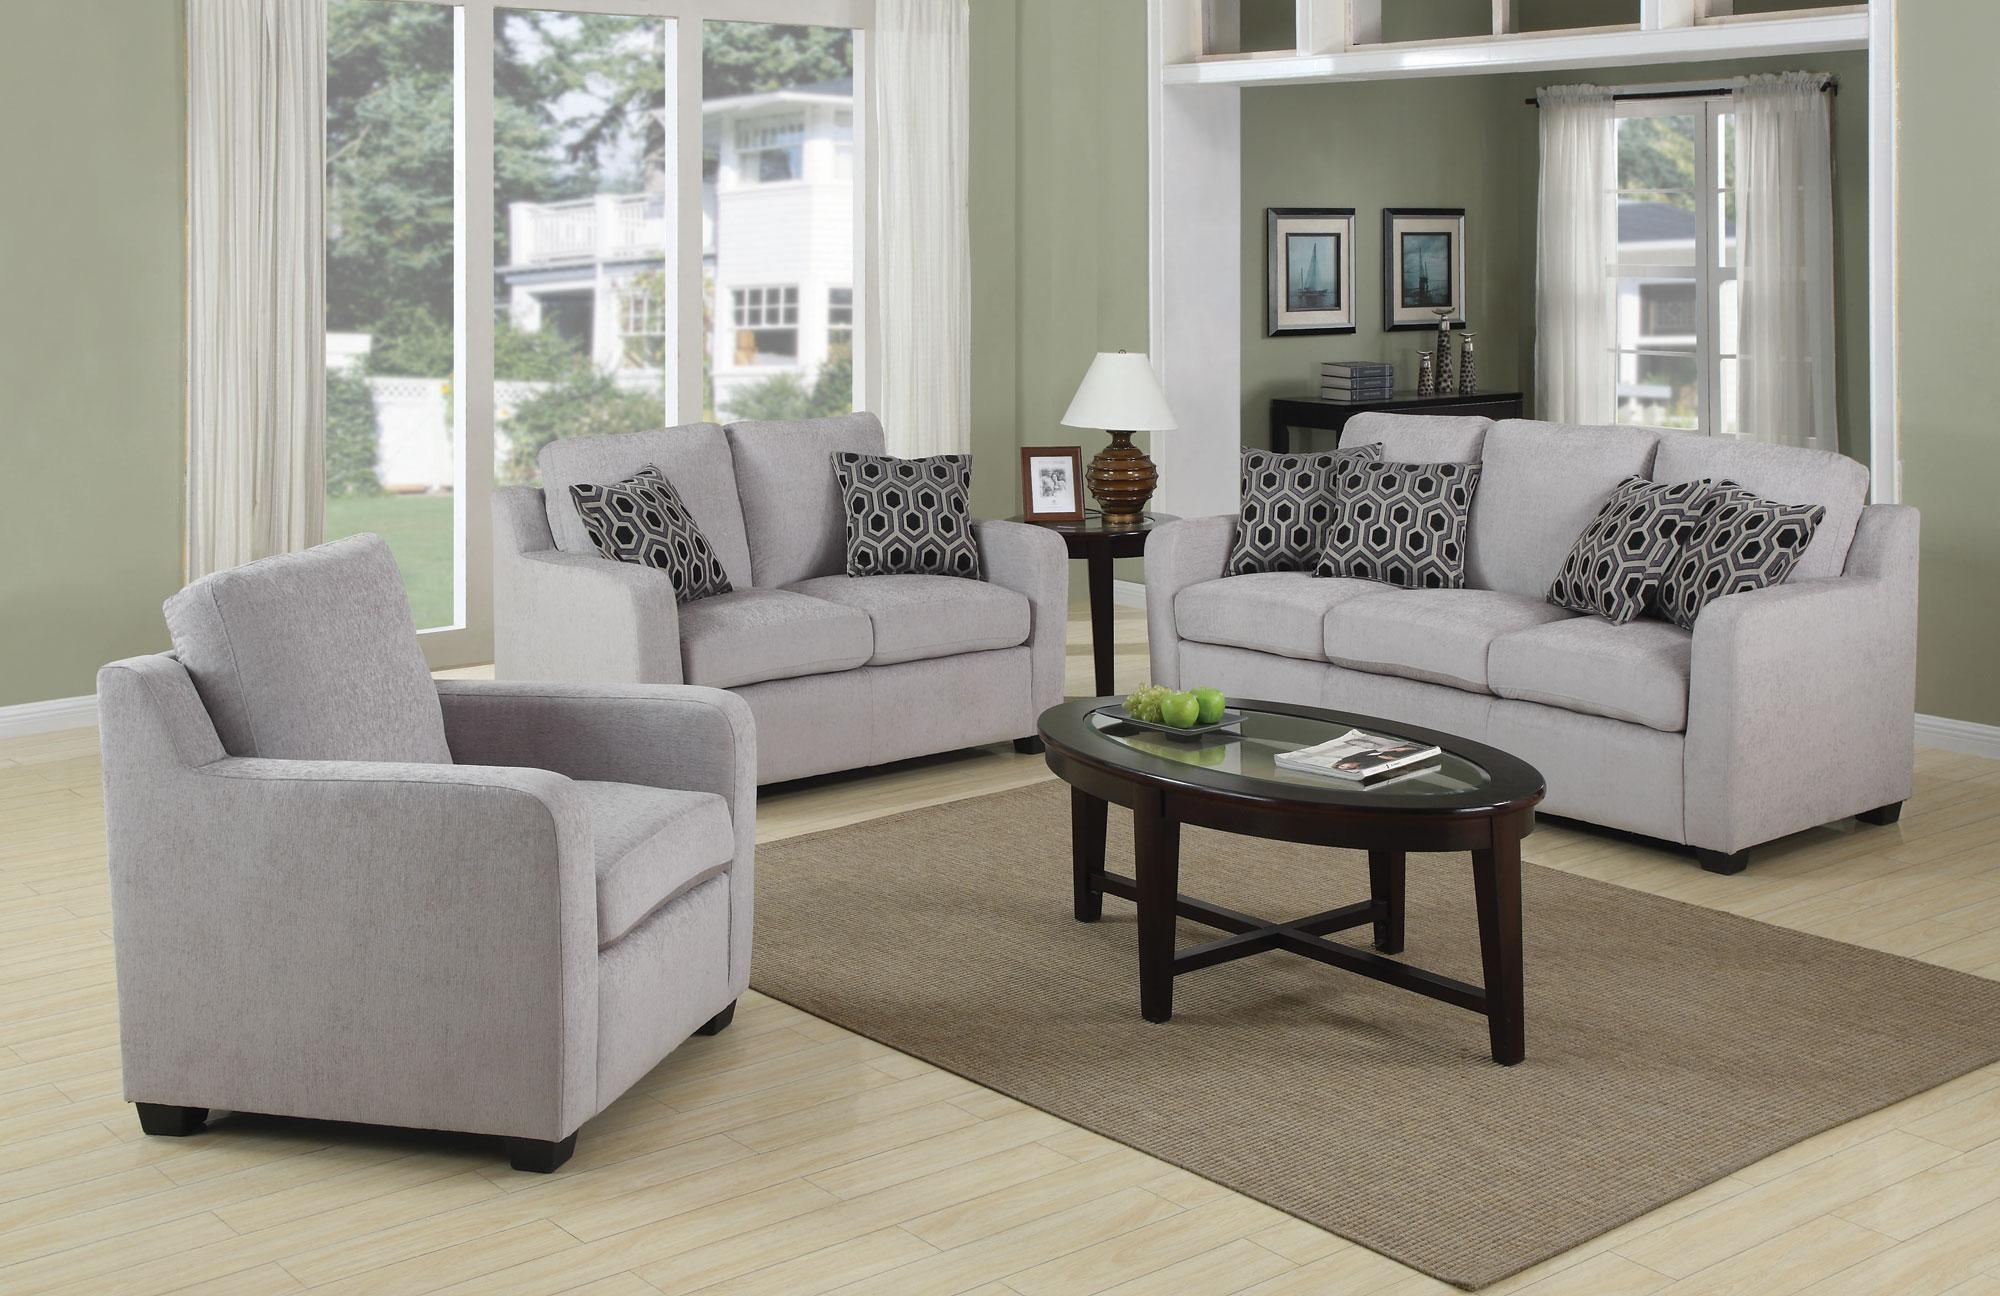 Fresh Light Grey Couch What Color Walls 68 With Additional Colour Pertaining To Sofas With Lights (View 20 of 21)